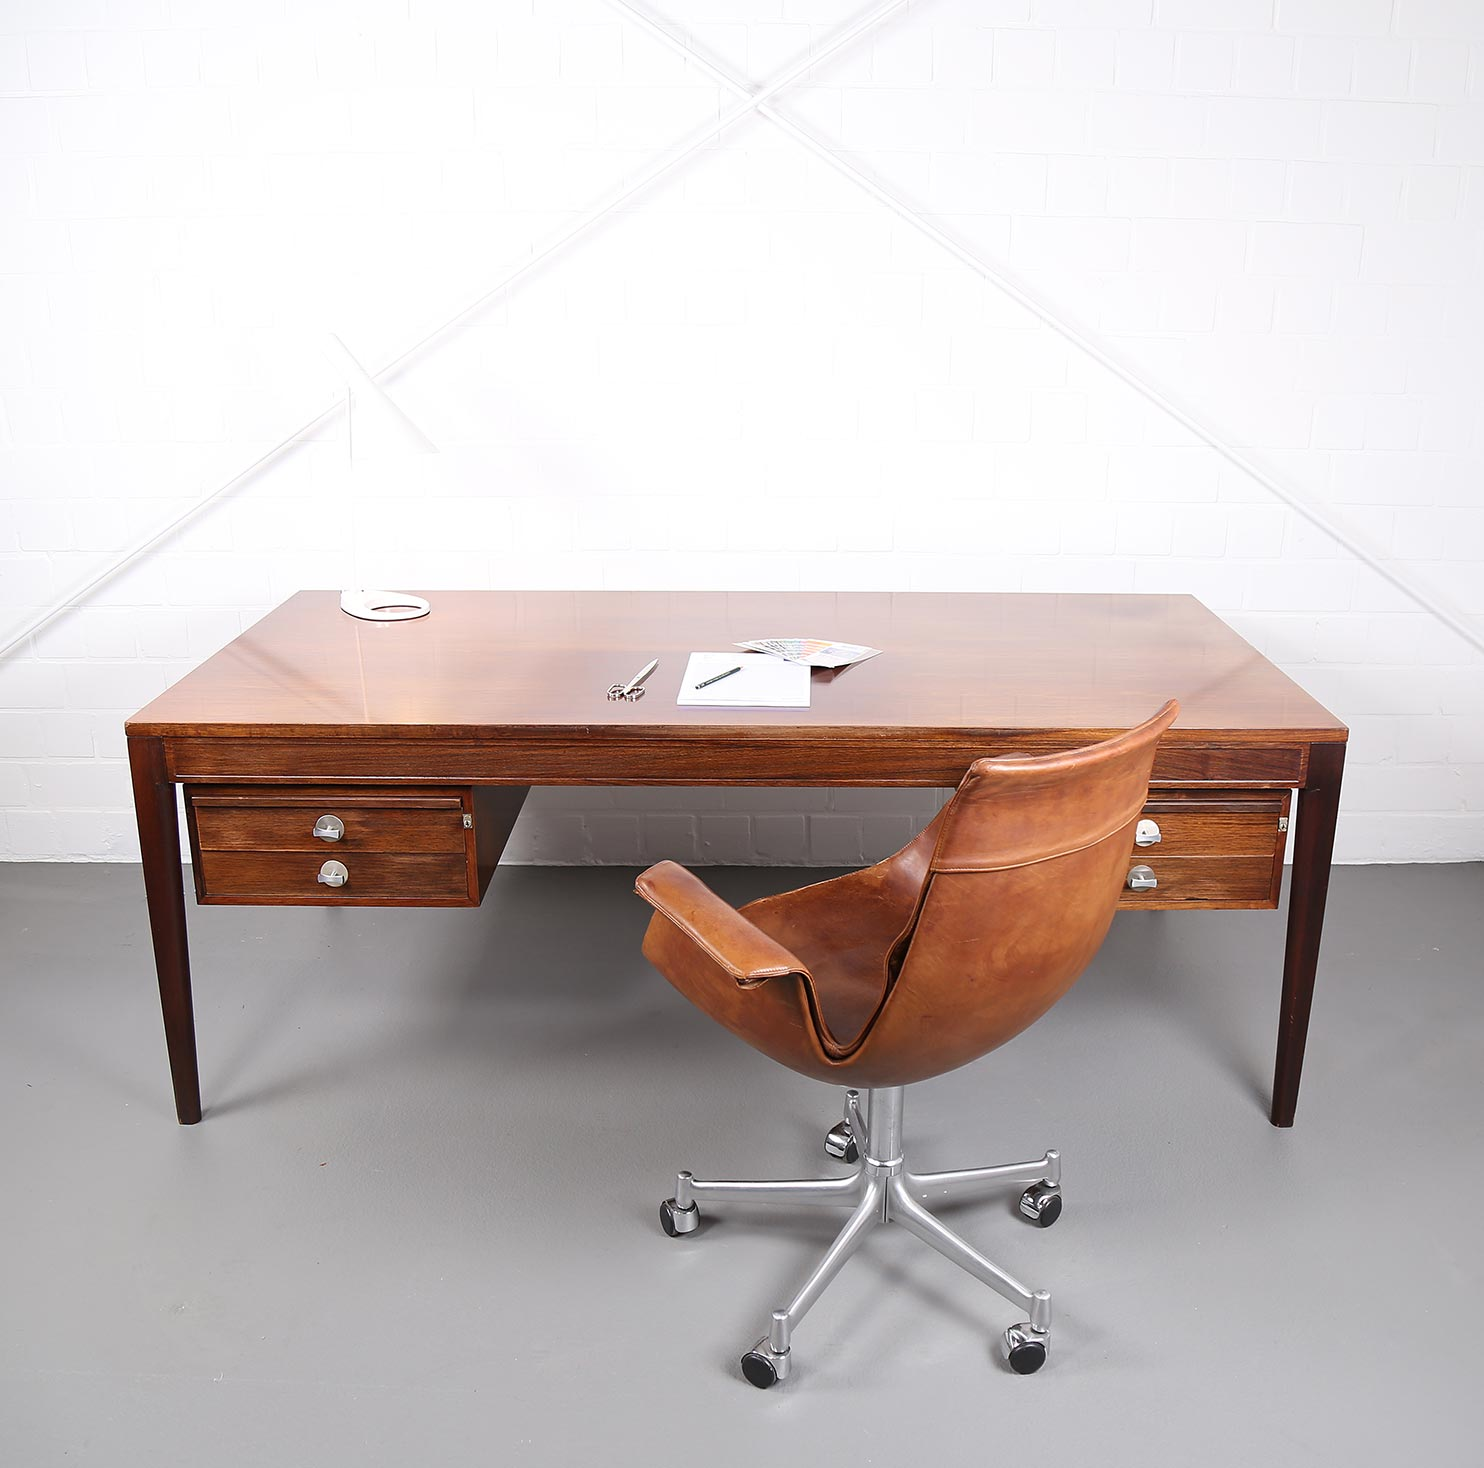 Executive desk diplomat by finn juhl for france & søn – dekaden